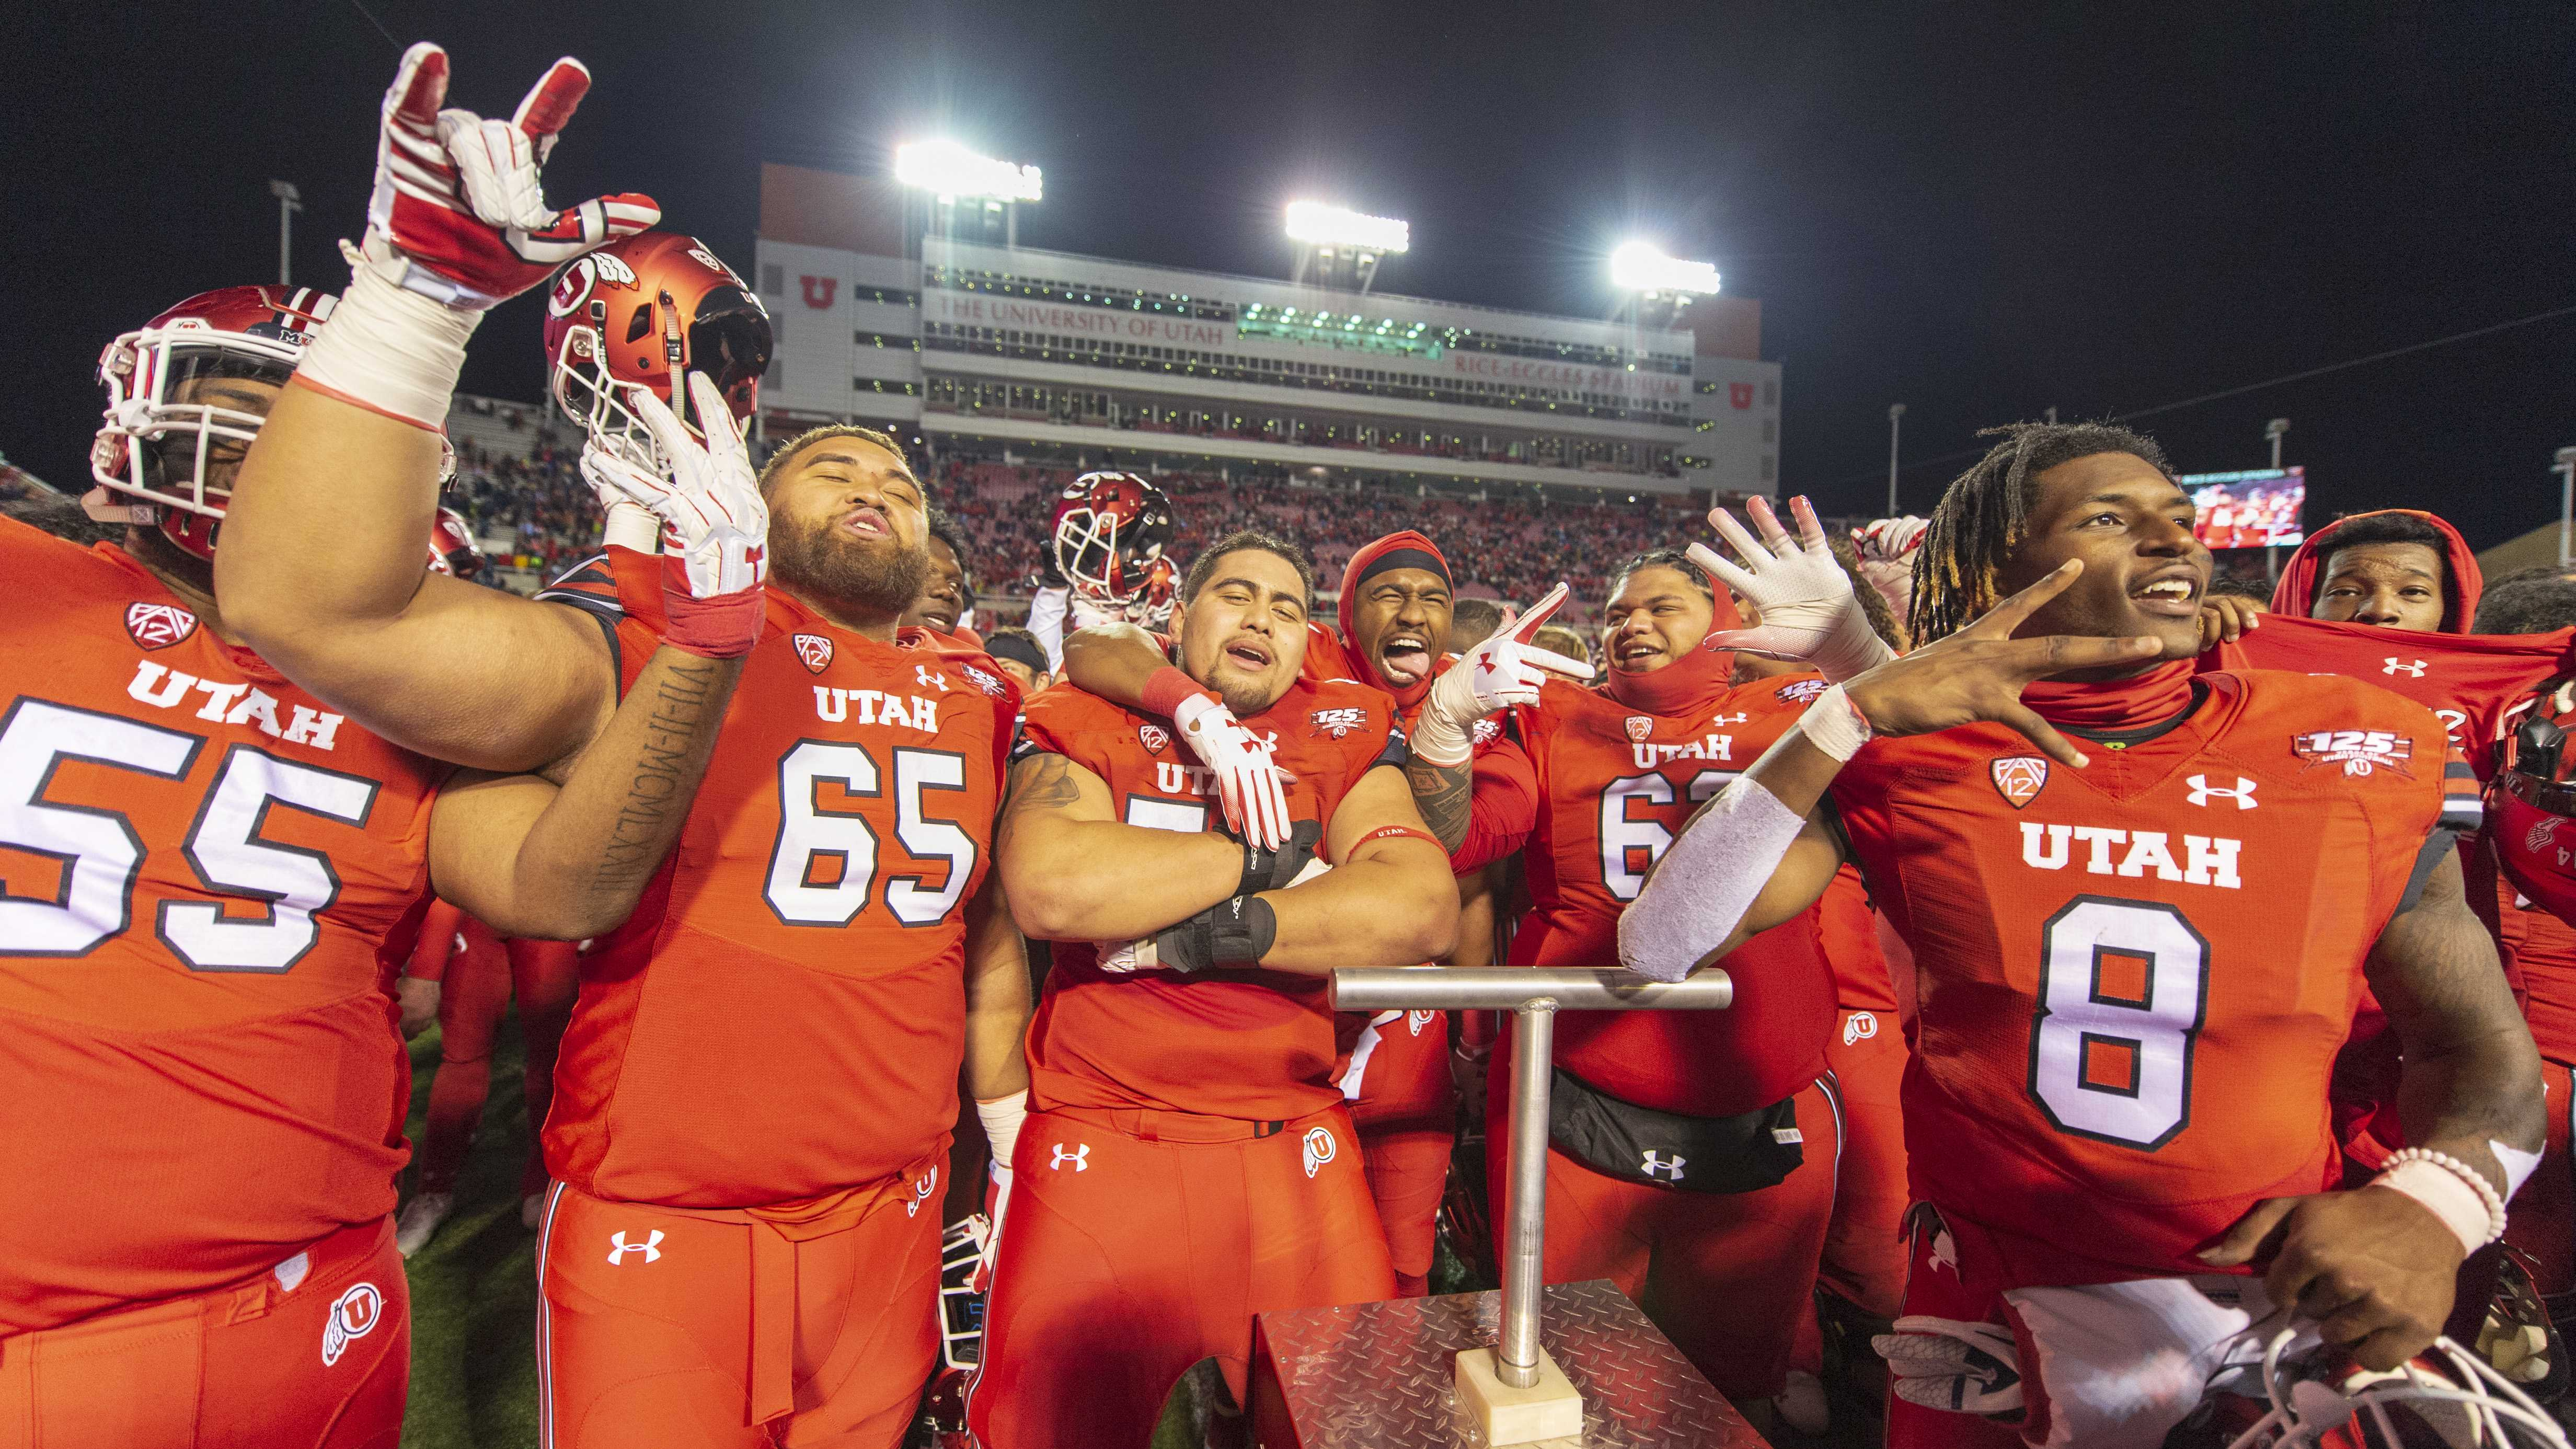 The University of Utah football team sings the Utah fight song following their victory over Brigham Young University in an NCAA Football game at Rice Eccles Stadium in Salt Lake City, Utah on Sunday, Nov. 25, 2018. (Photo by Kiffer Creveling | The Daily Utah Chronicle)